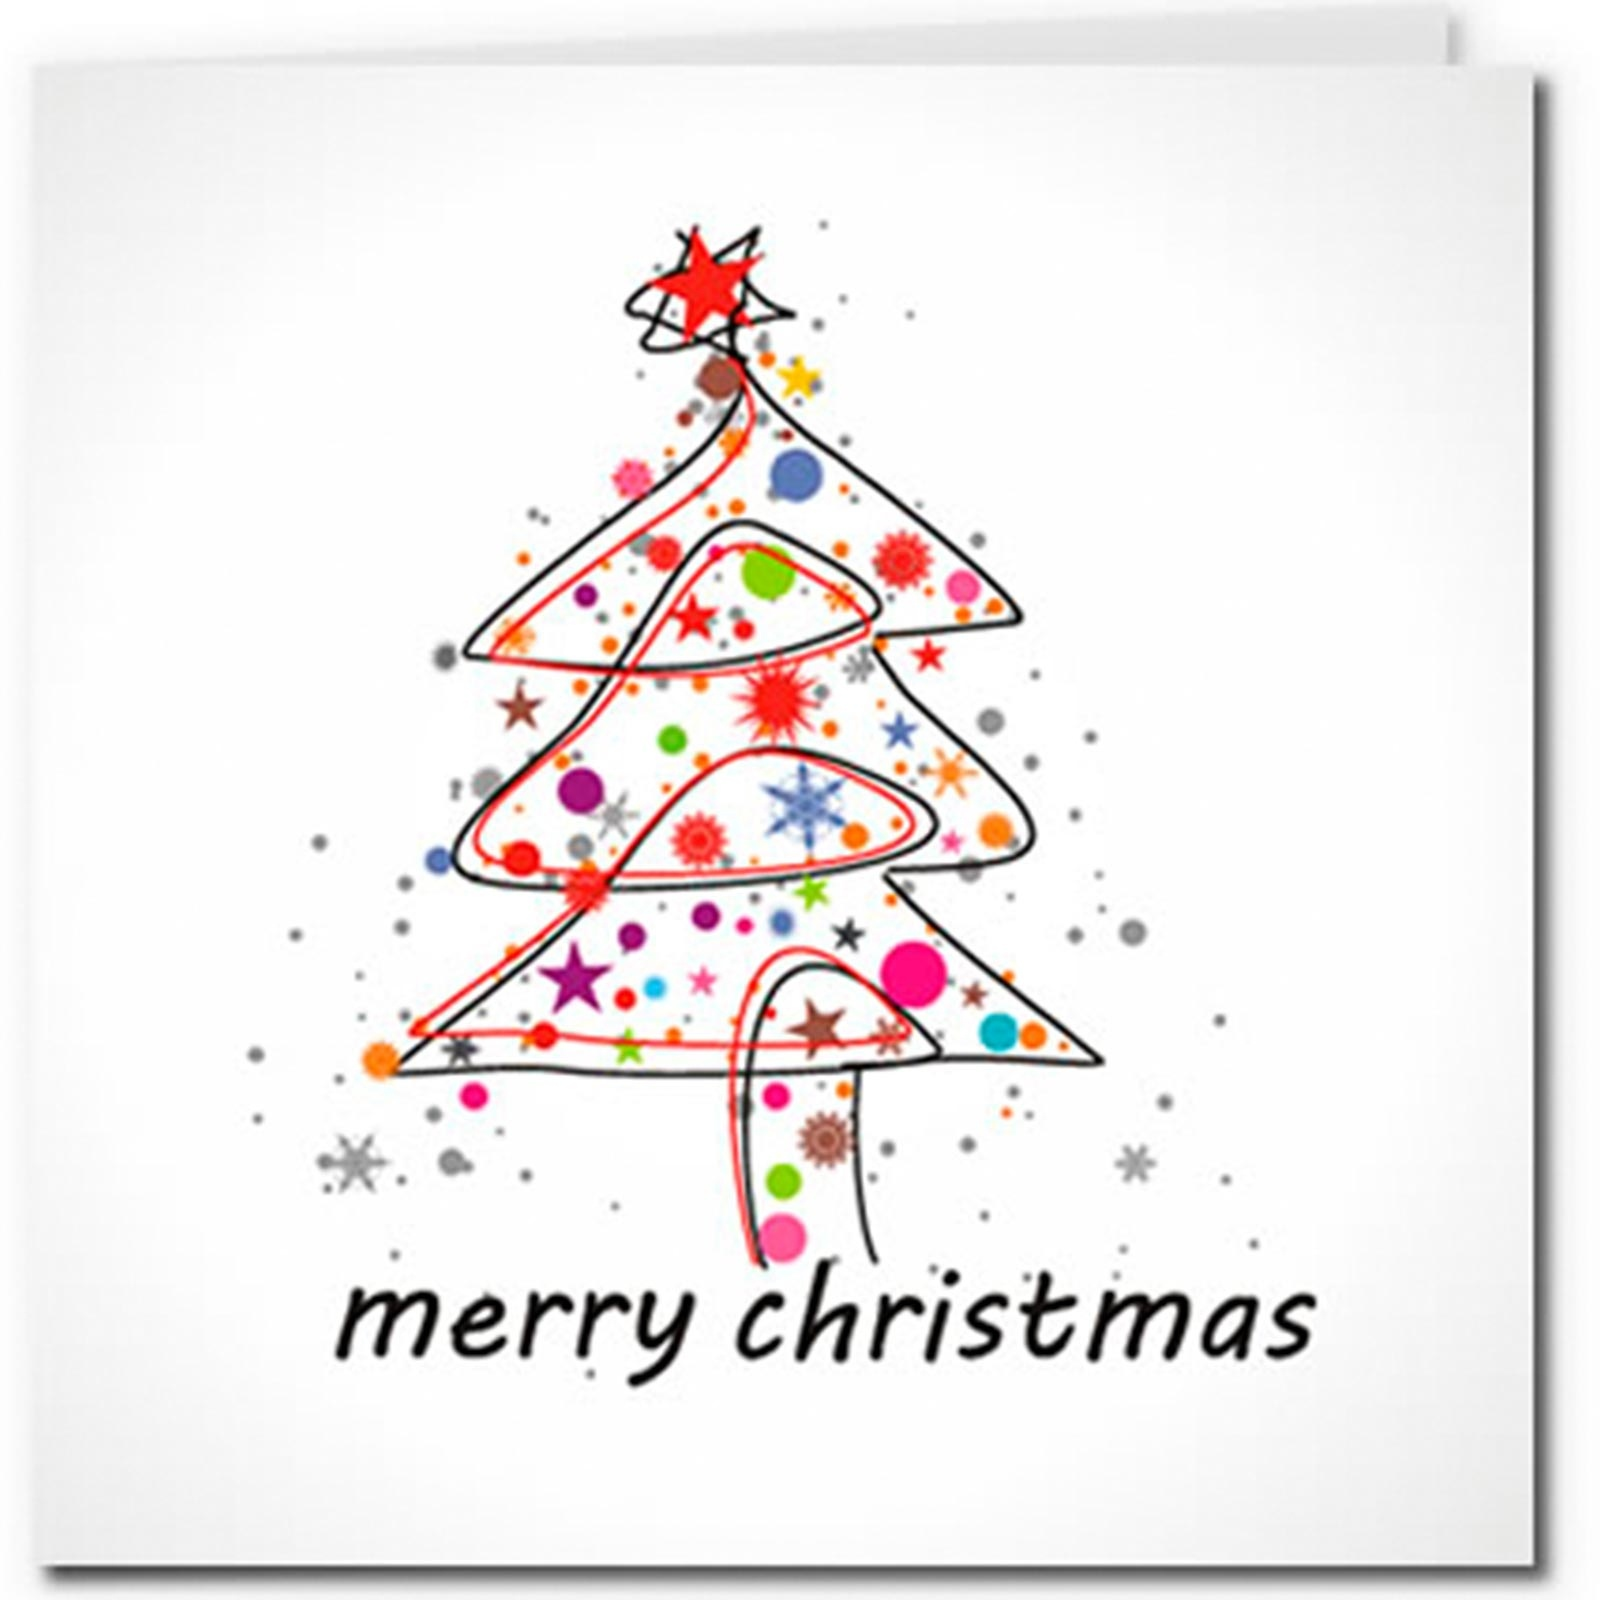 Free Christmas Cards To Print Out And Send This Year   Reader's Digest - Free Printable Christmas Cards